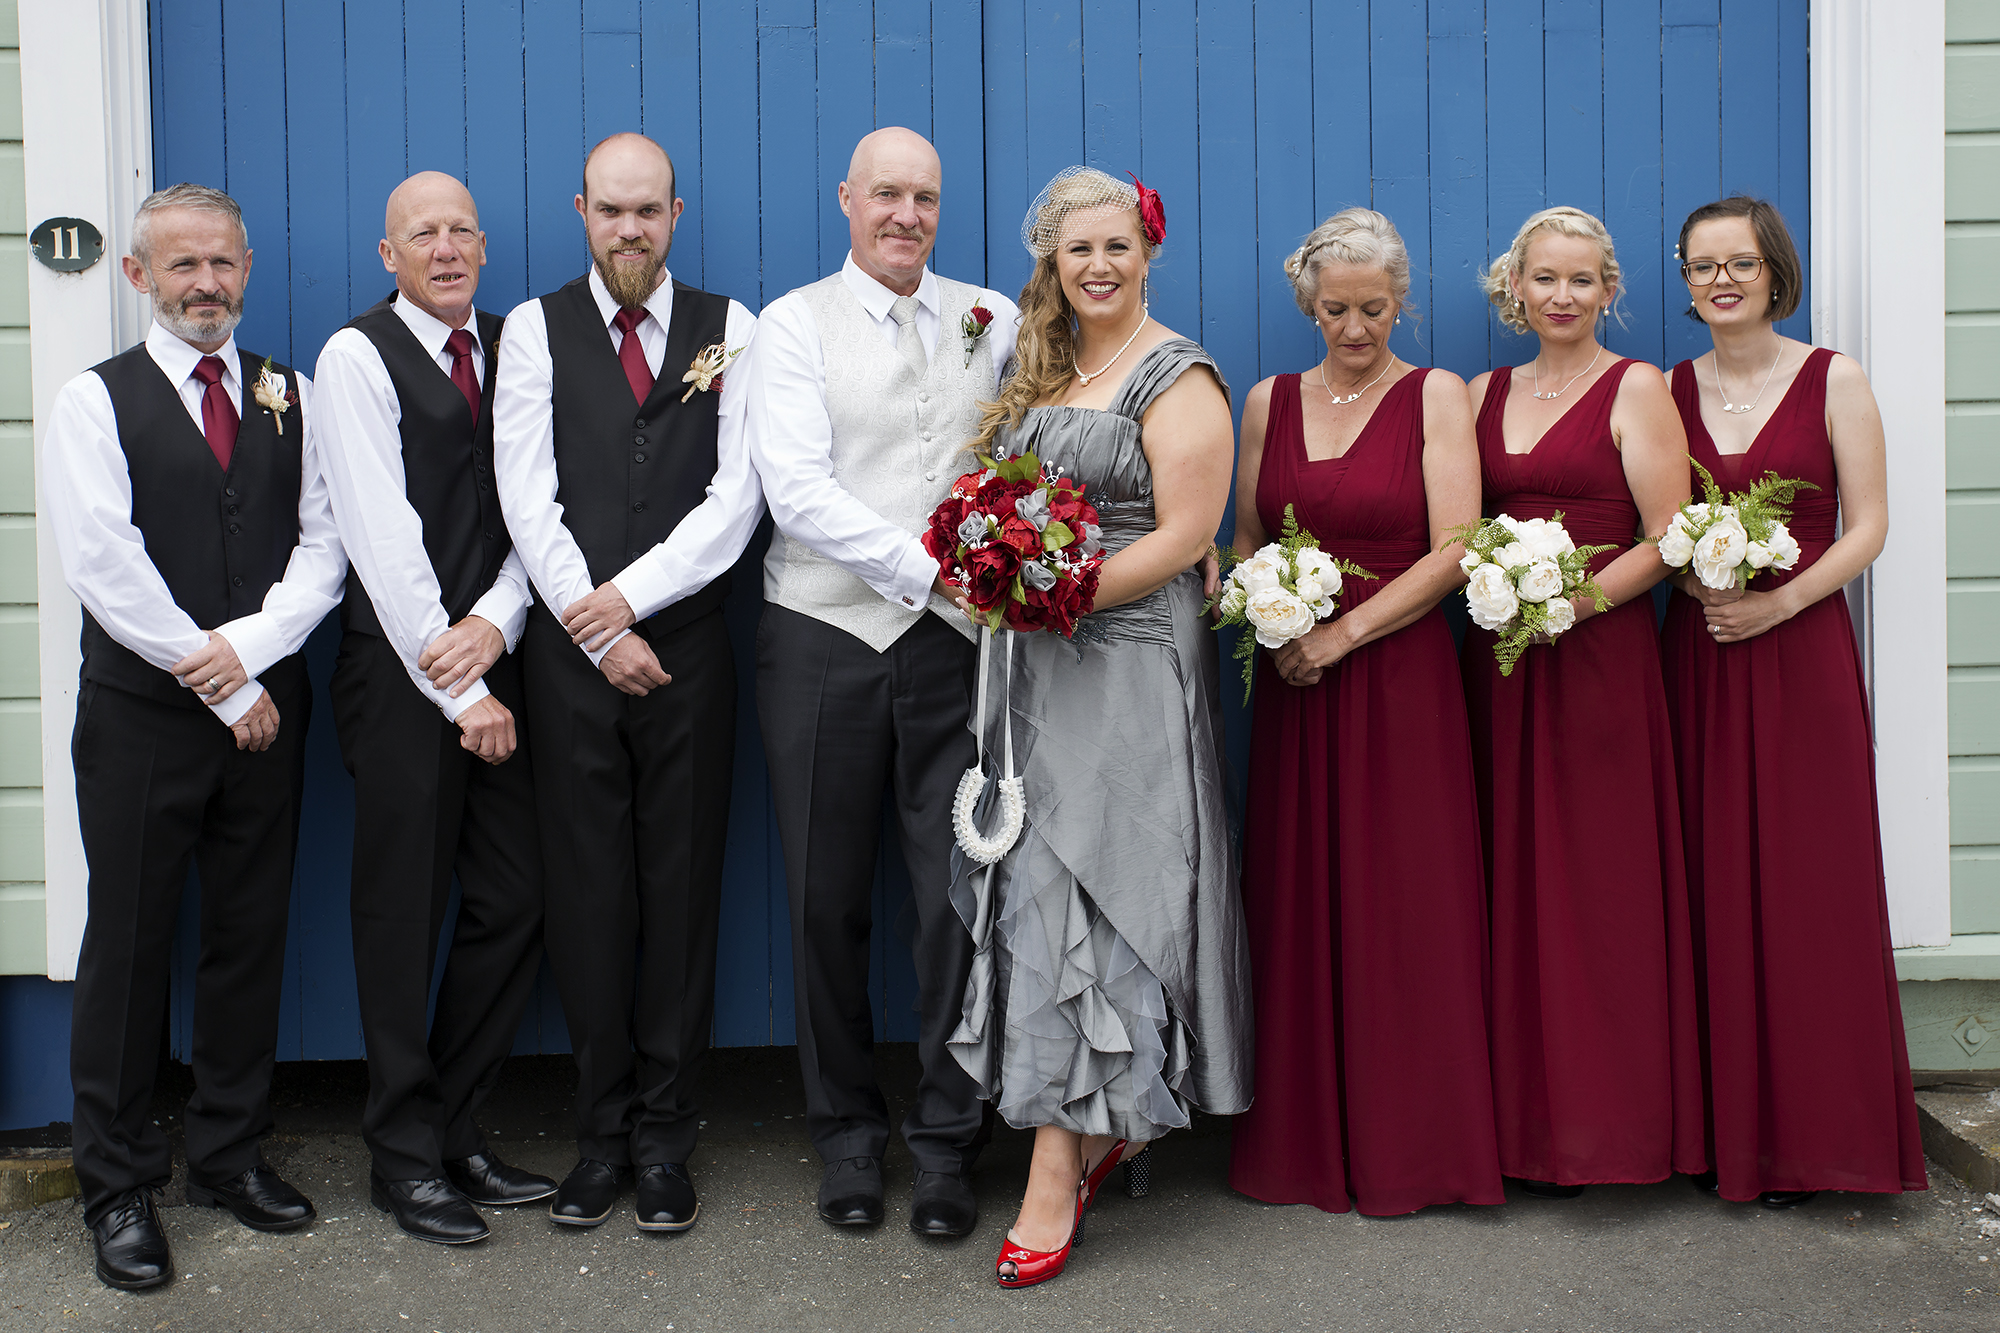 4 Bride and Groom Bridal Party51.jpg